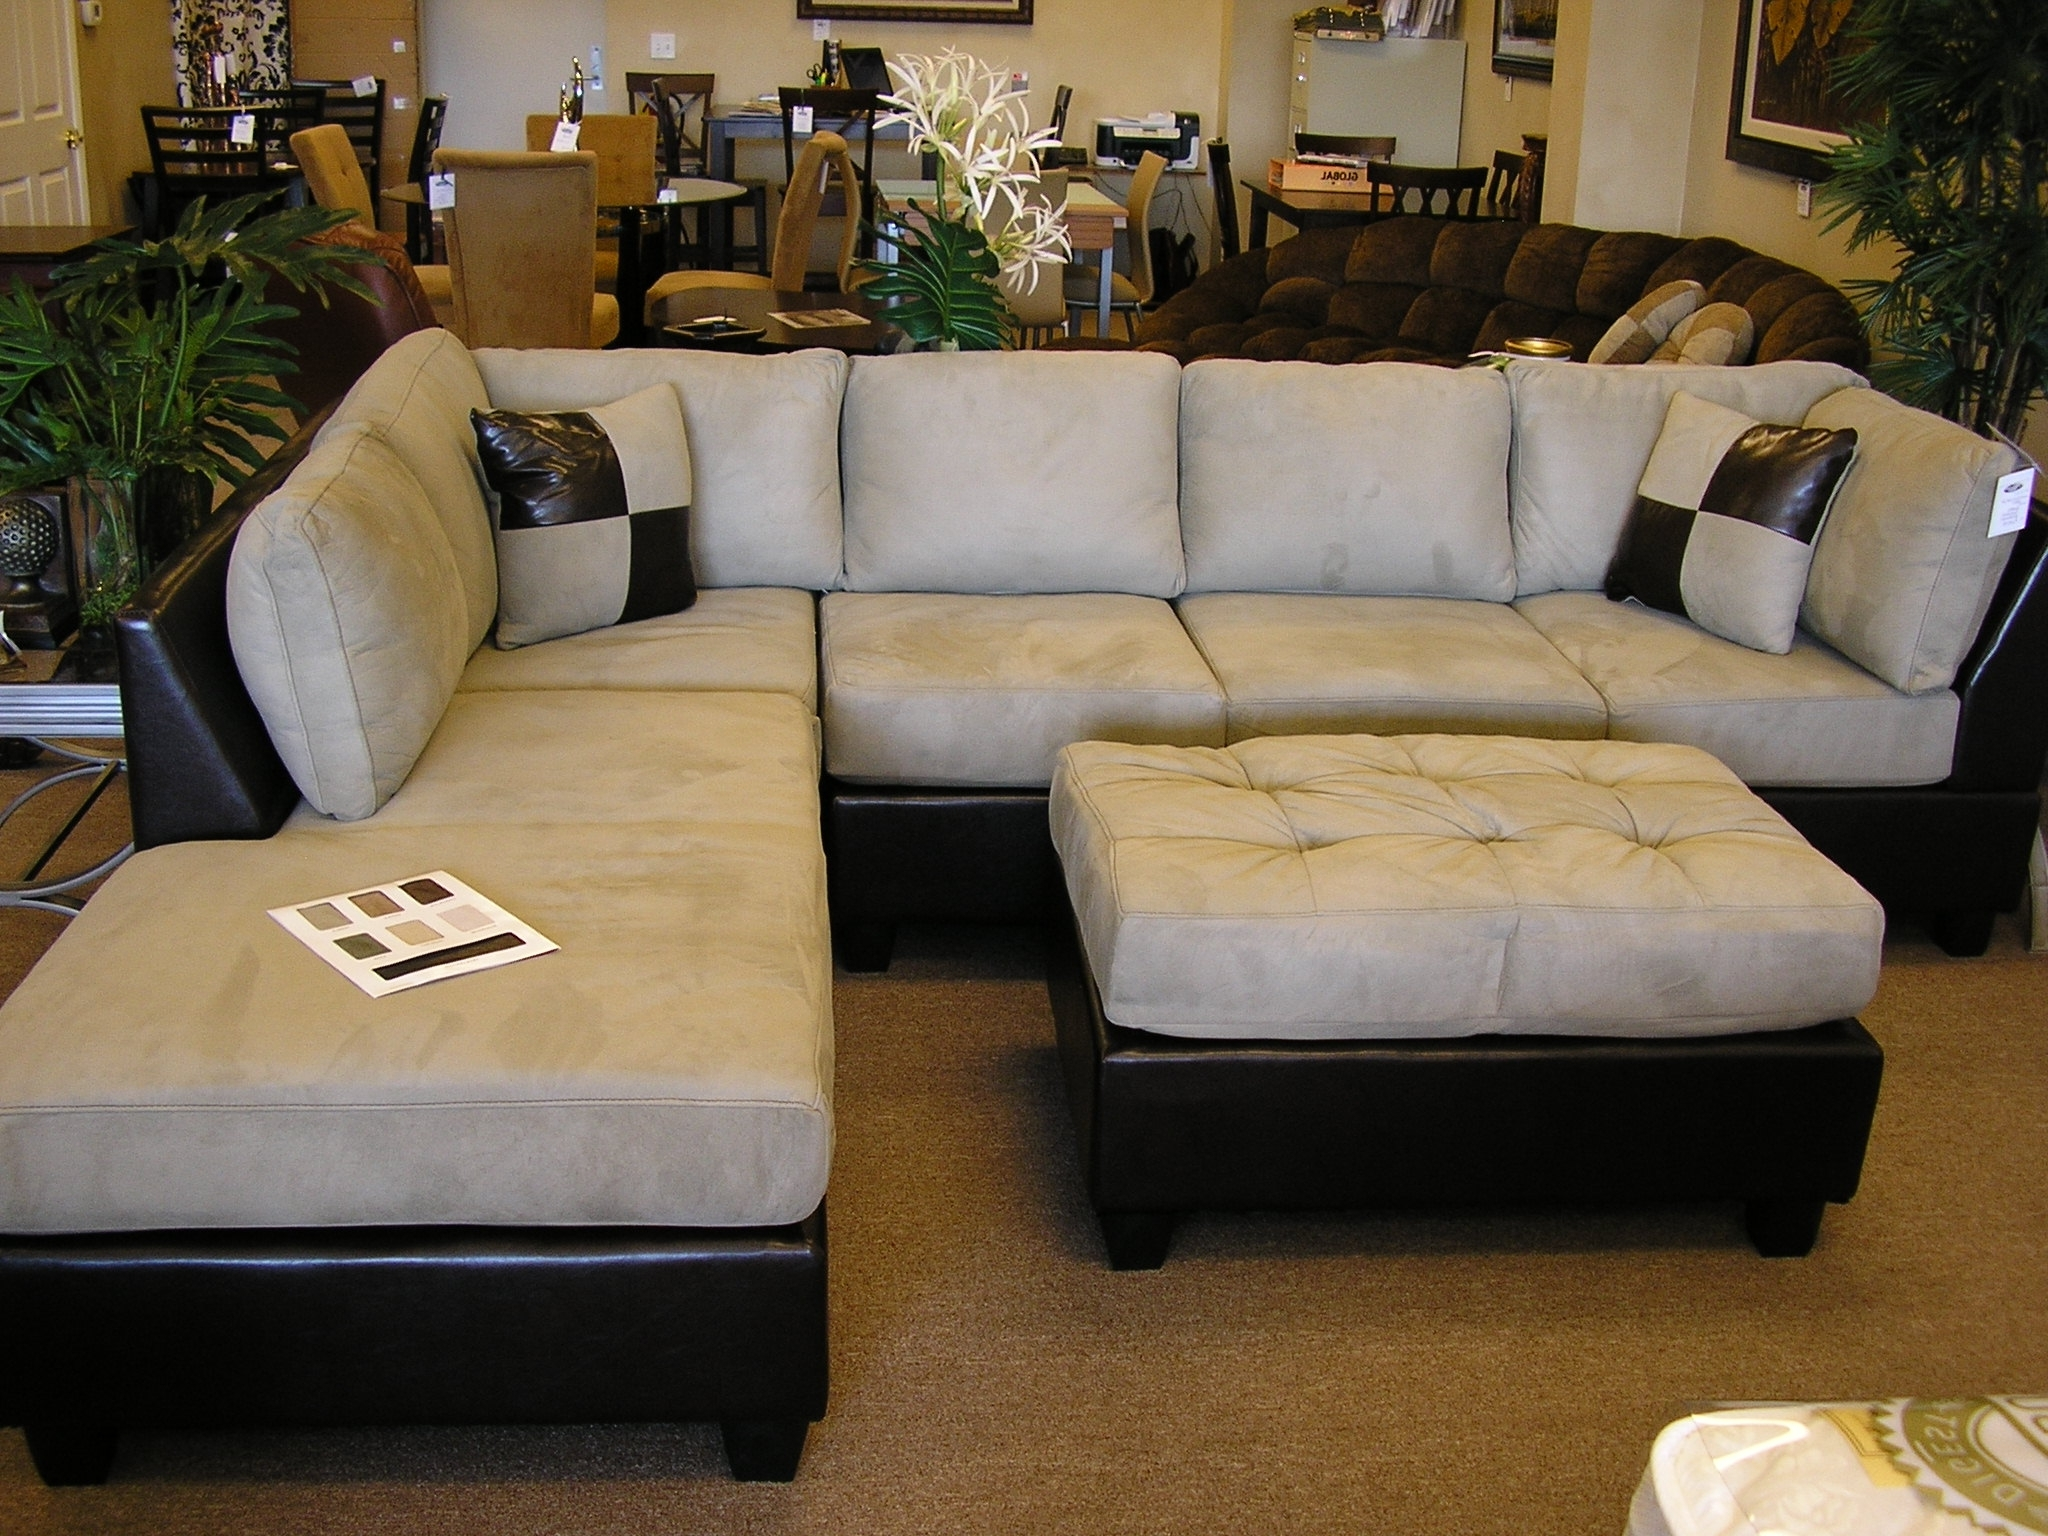 Sofas With Chaise And Ottoman Throughout Fashionable Furniture : Sectional Chaise Lounge Sofa Double Along With (View 16 of 20)